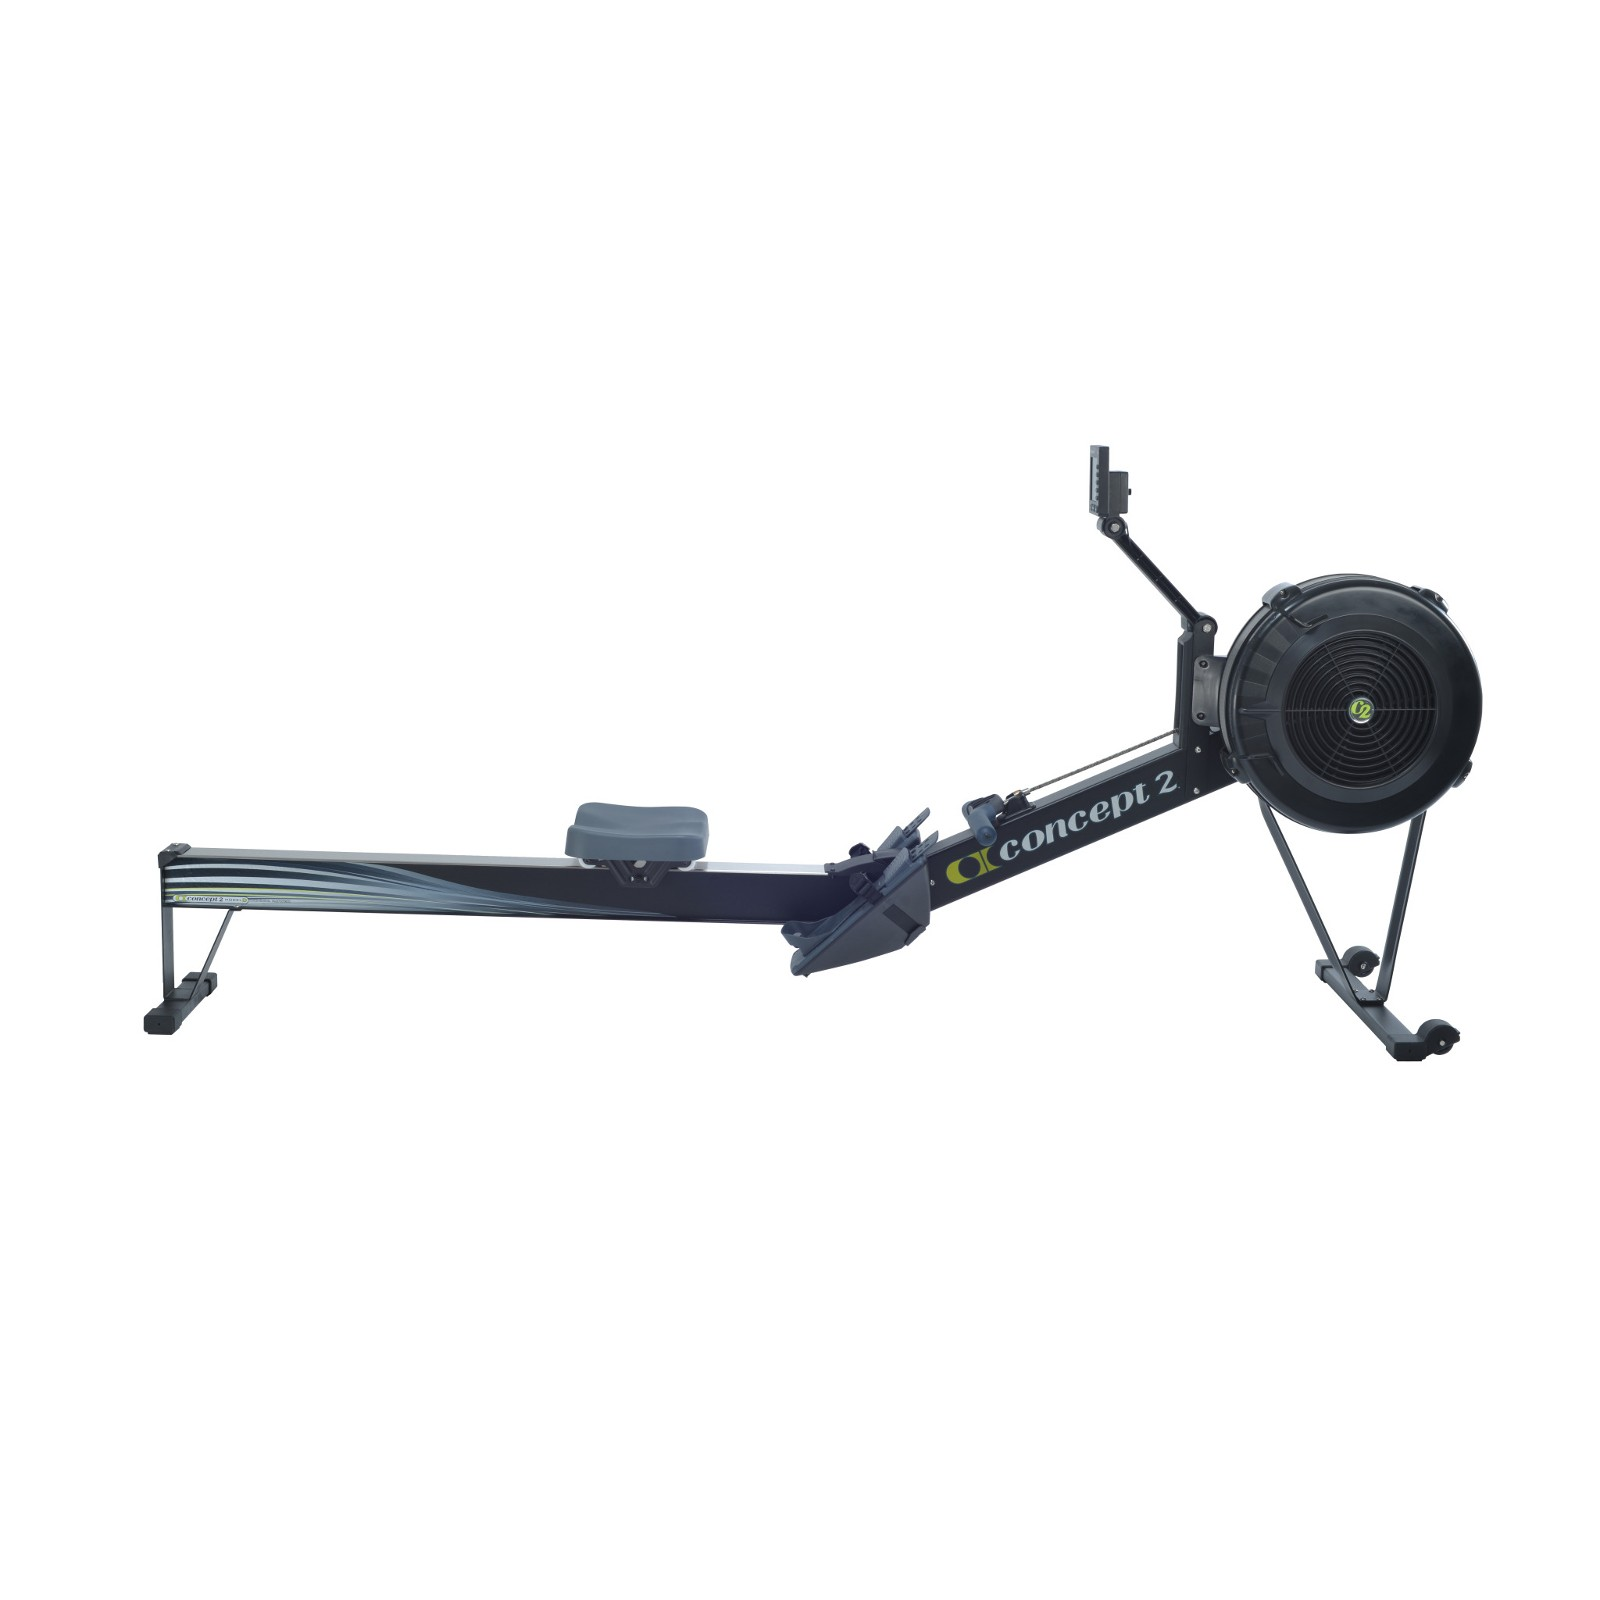 7fb025a78880 Product picture. Loading zoom. concept2. Concept2 rowing machine ...